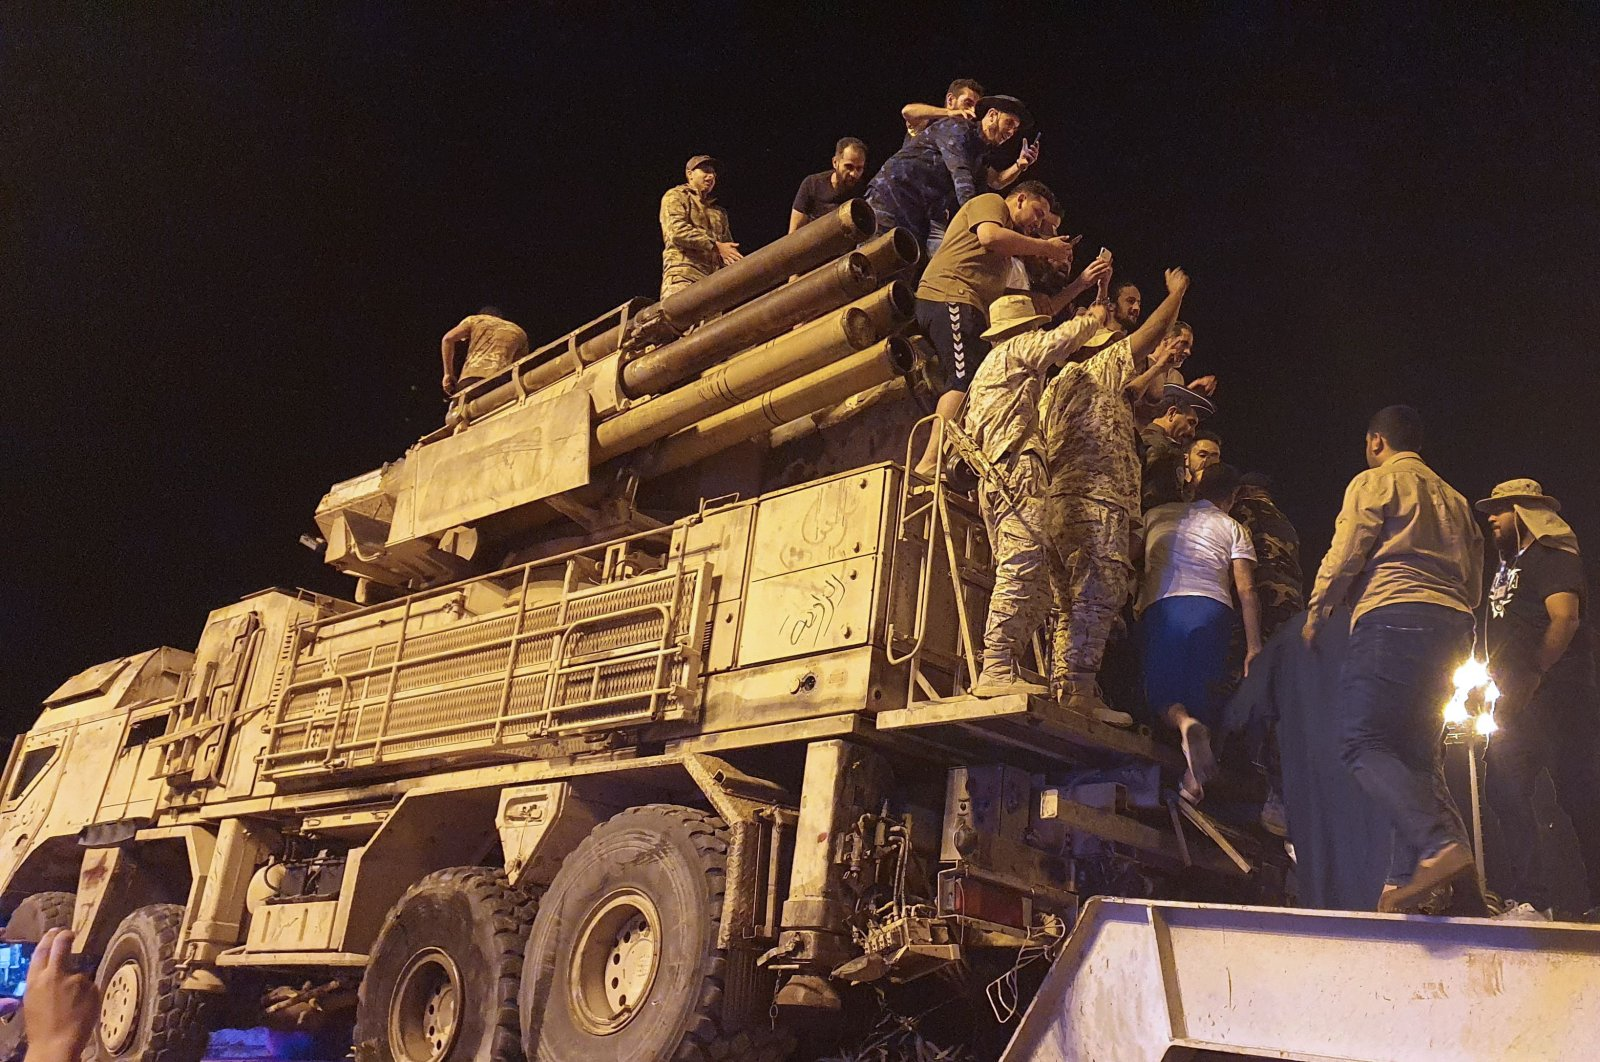 Forces loyal to Libya's UN-recognised Government of National Accord (GNA) parade a Pantsir air defense system truck in the capital Tripoli on May 20, 2020. (AFP Photo)